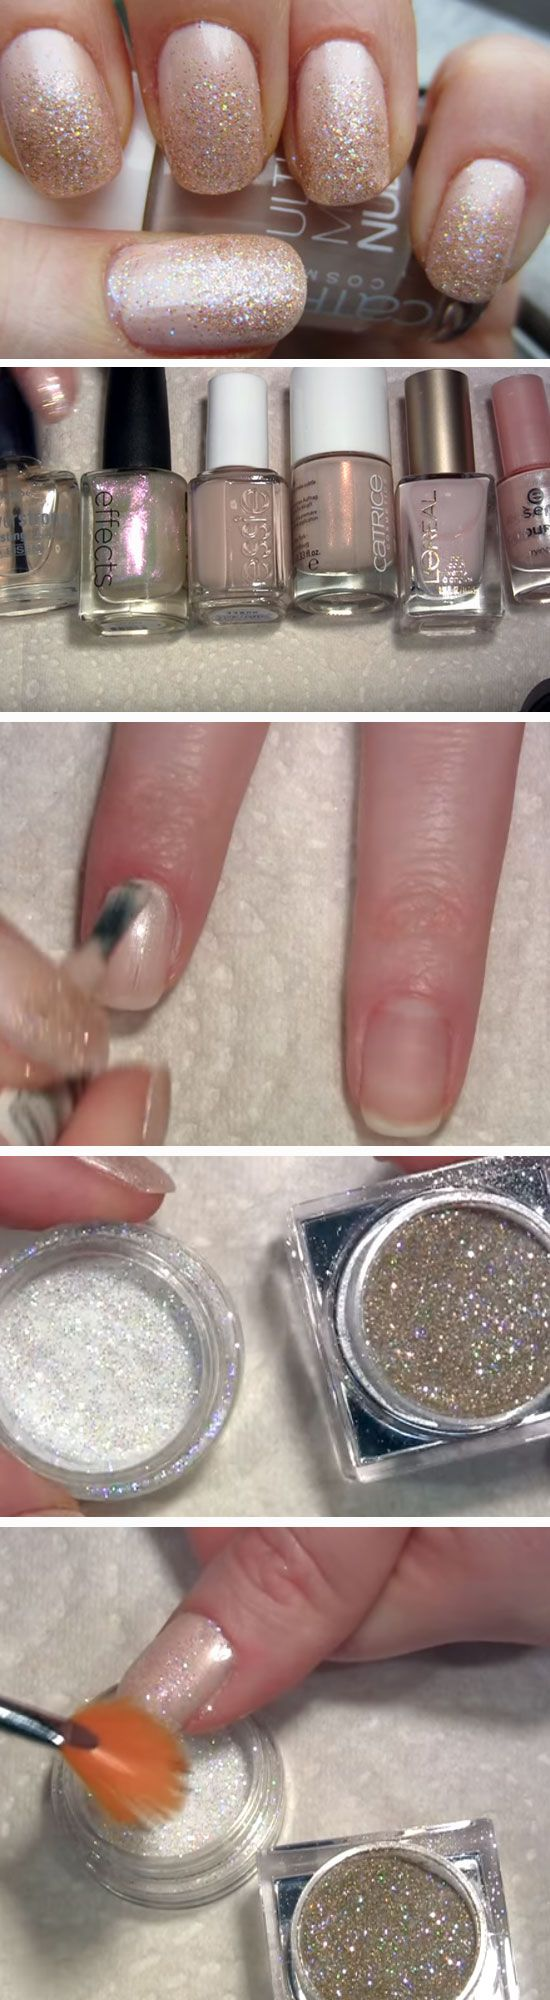 Nude Glitter Princess | Prom Nail Art Designs with Glitter